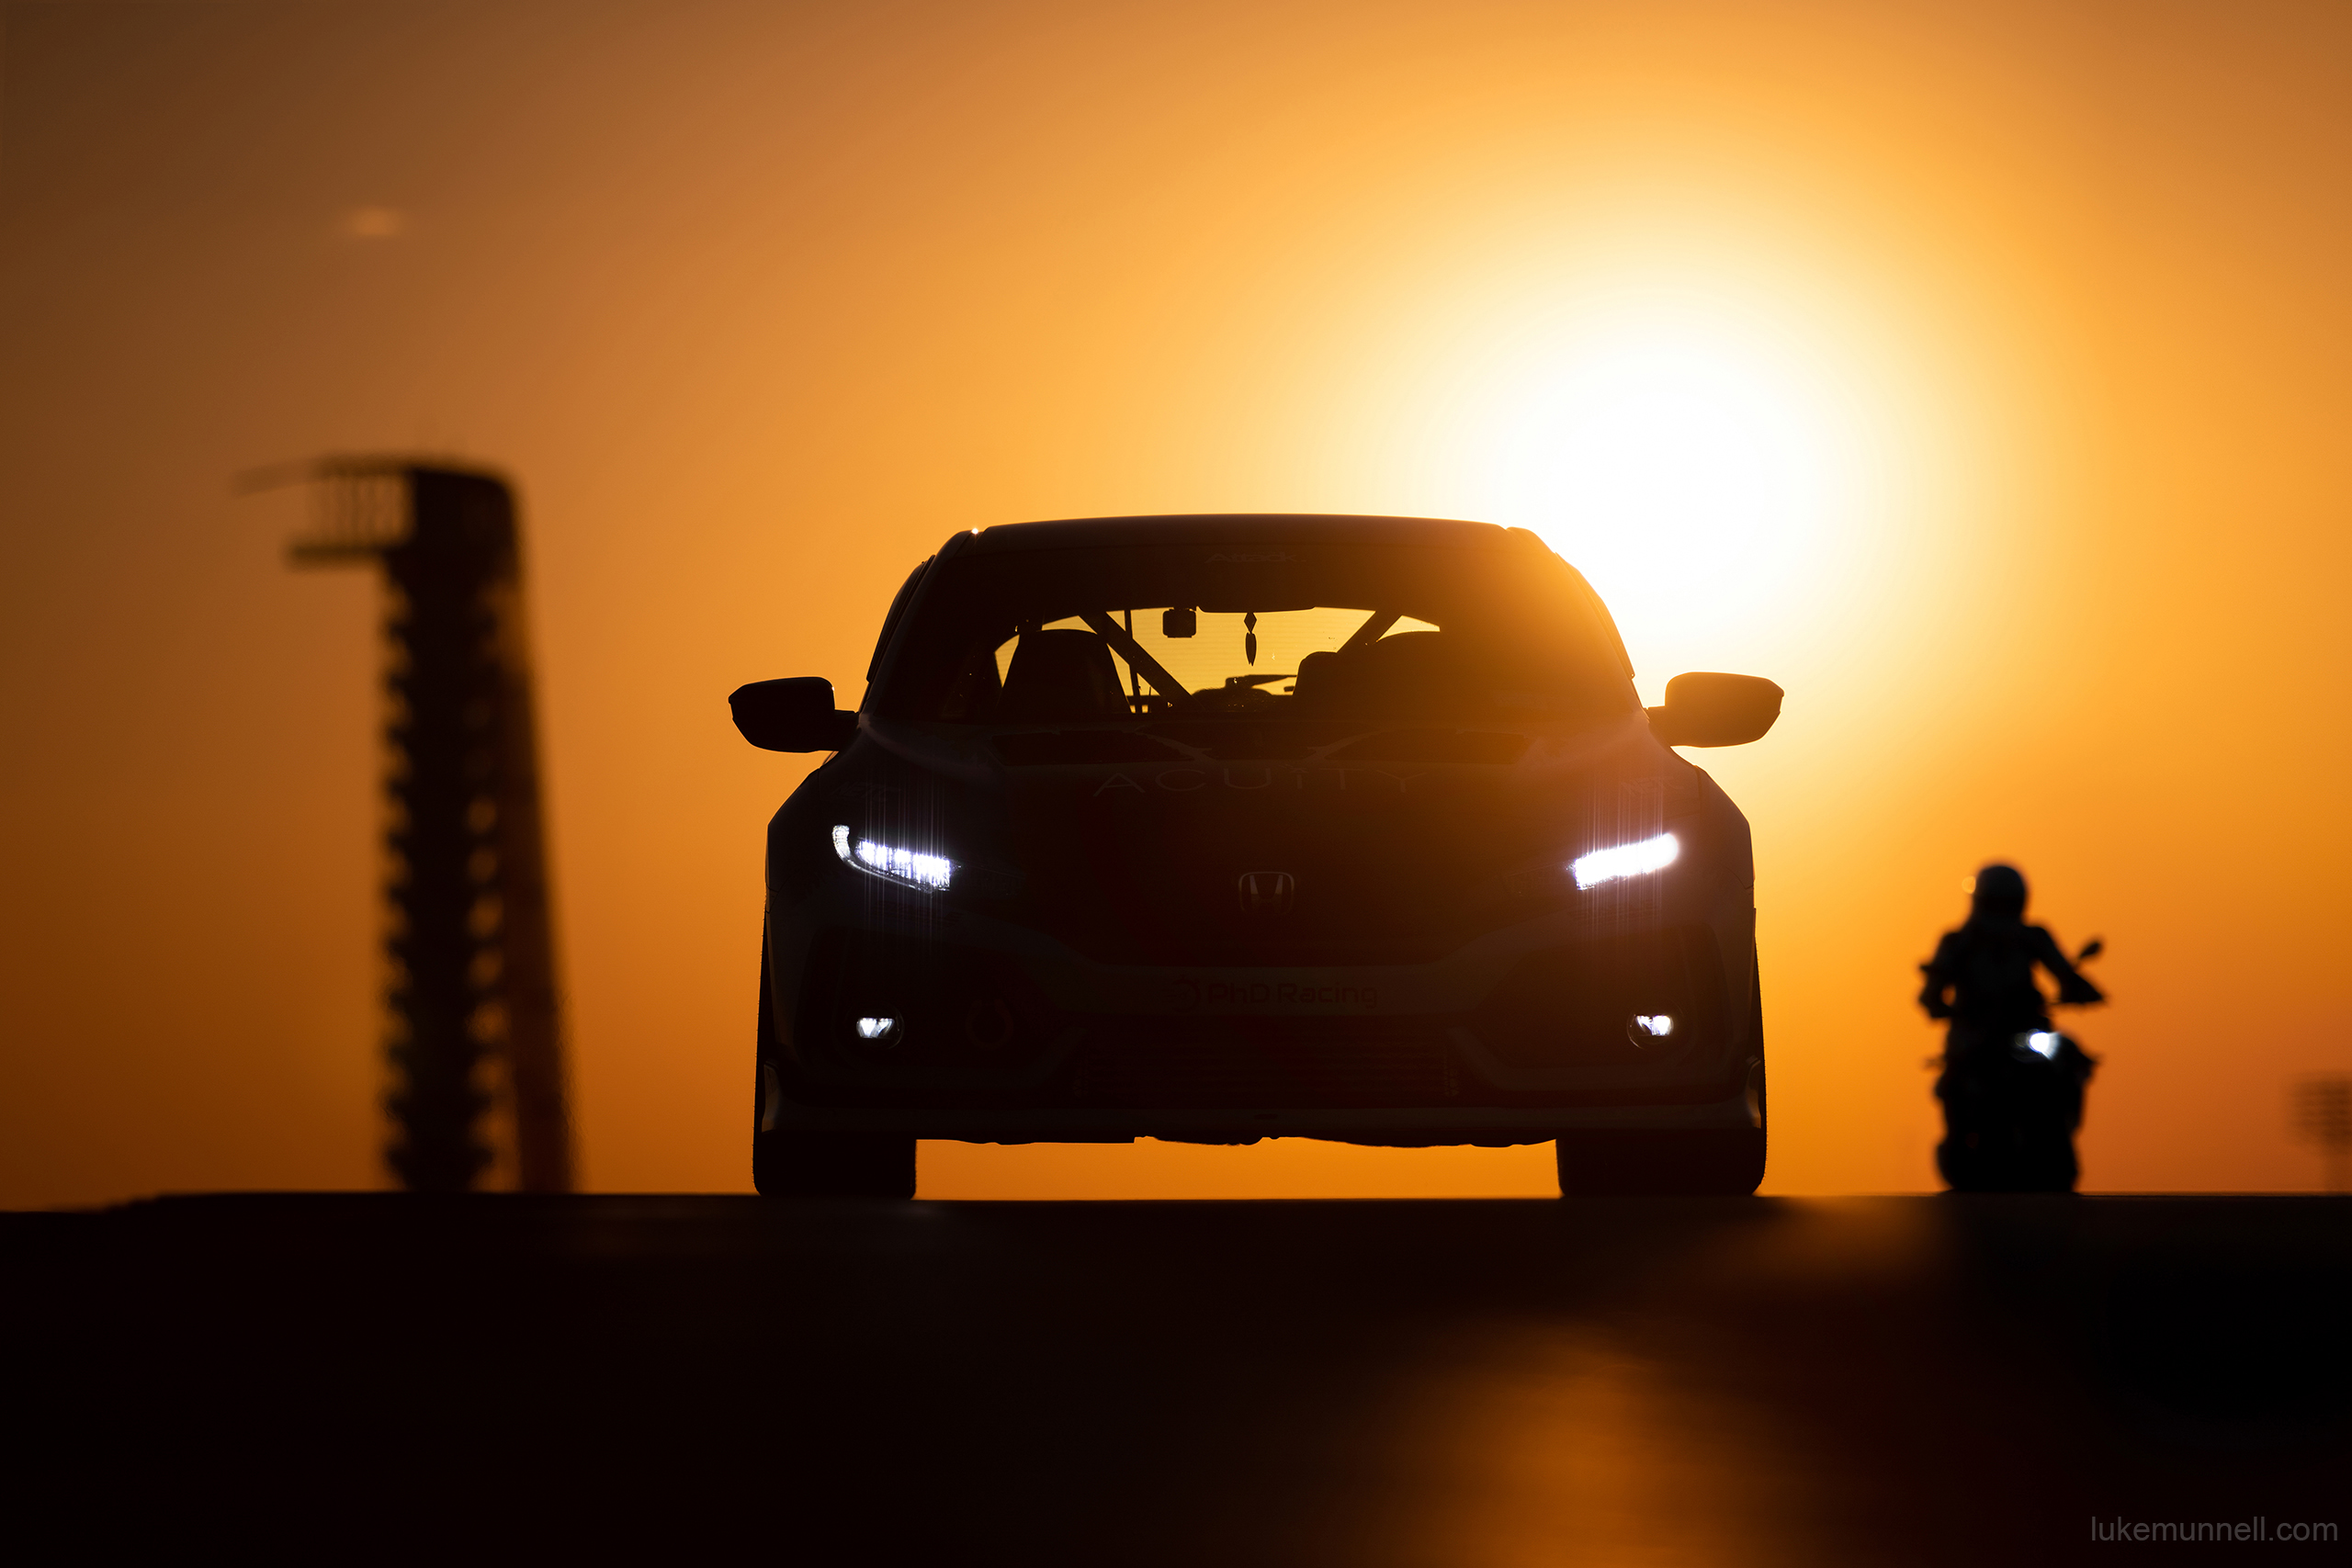 Mary Valdez FK8 Honda Civic Type R at COTA sunset at COTA with VP on motorcycle